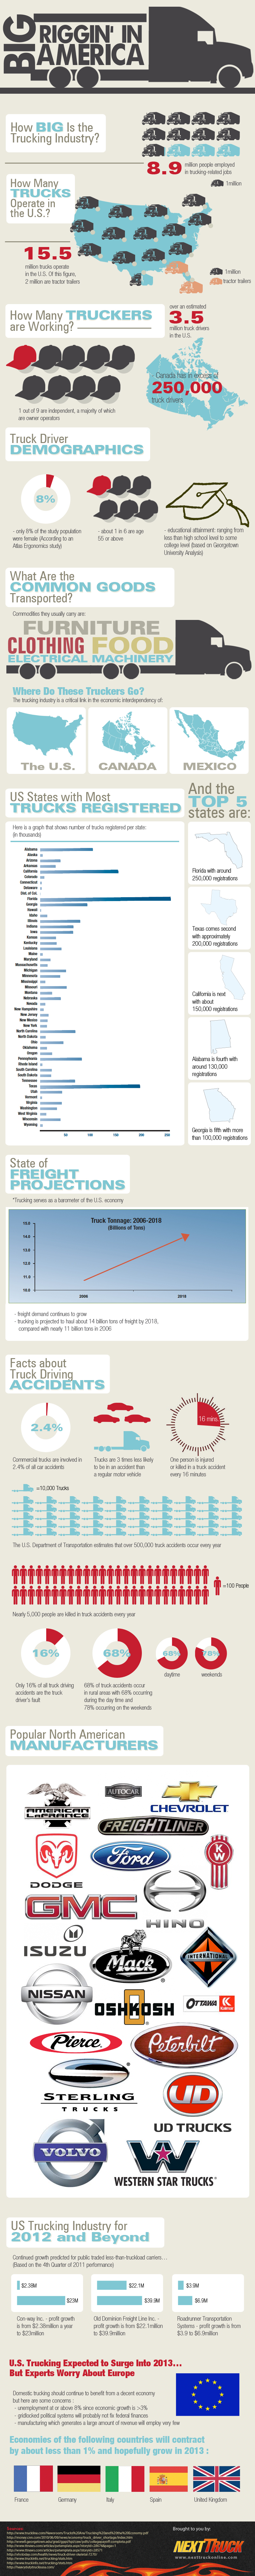 Trucking Industry Statistics and Facts